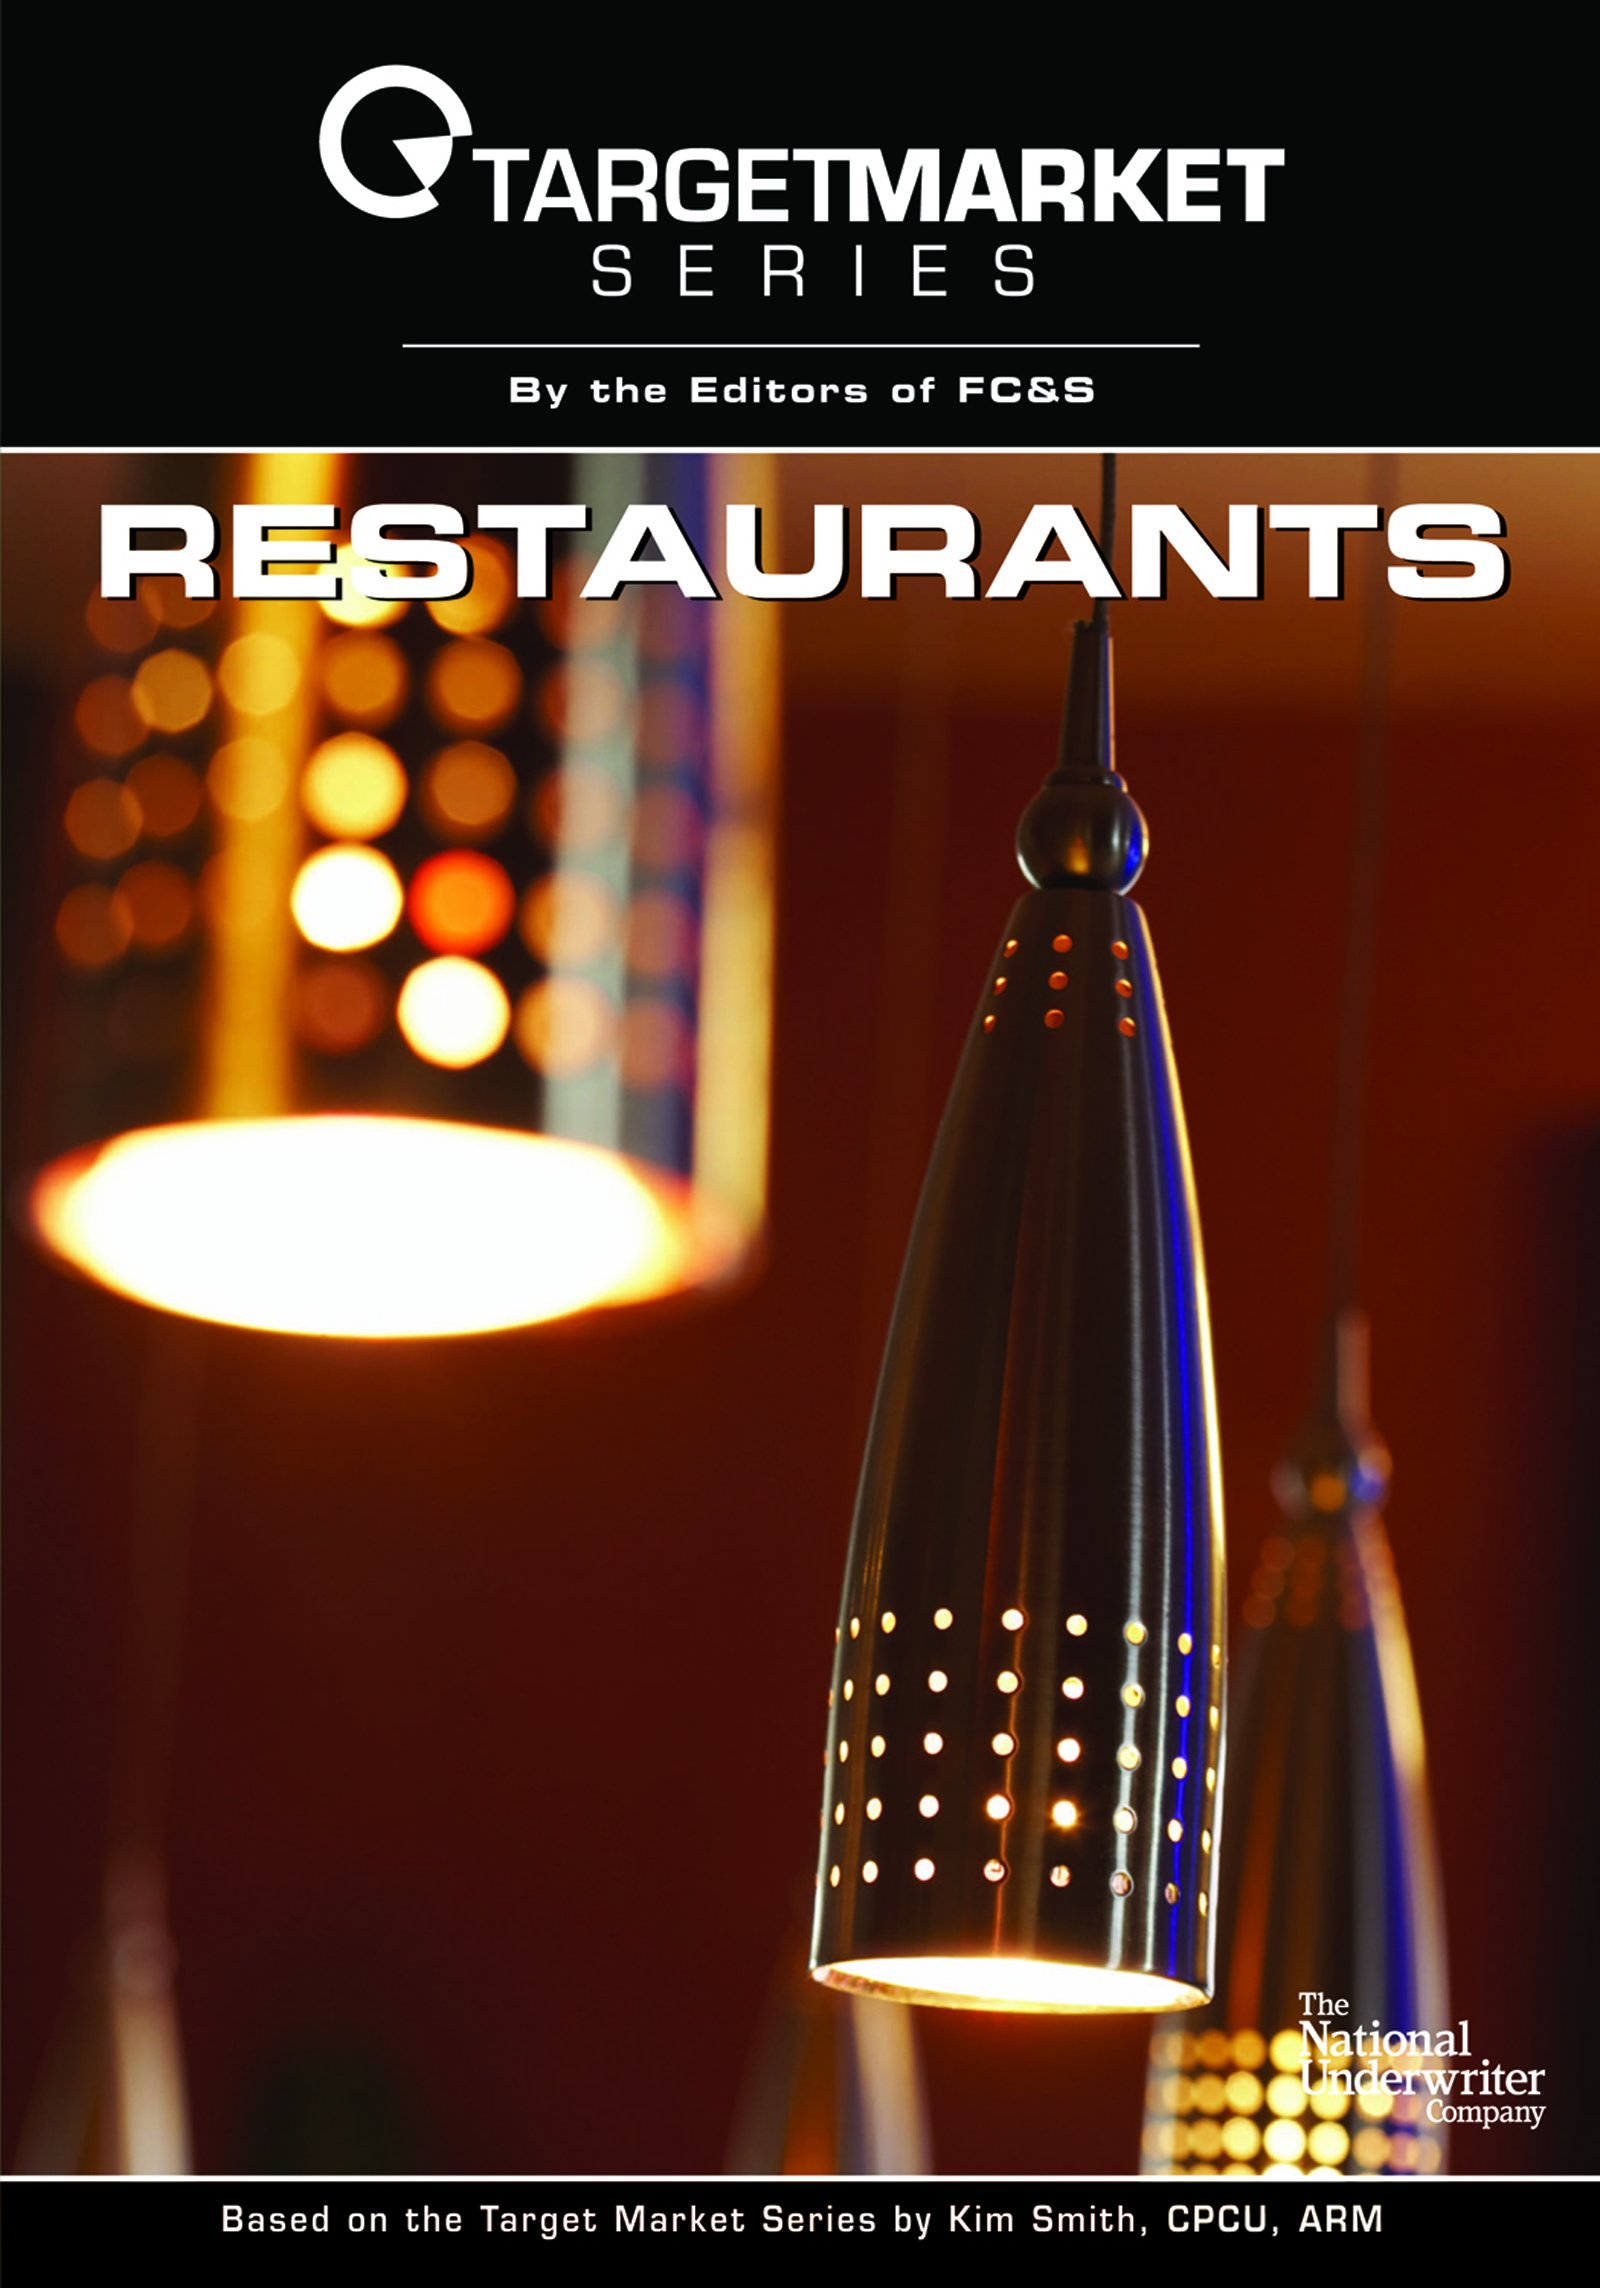 Target Market Series - Restaurants by The National Underwriter Company